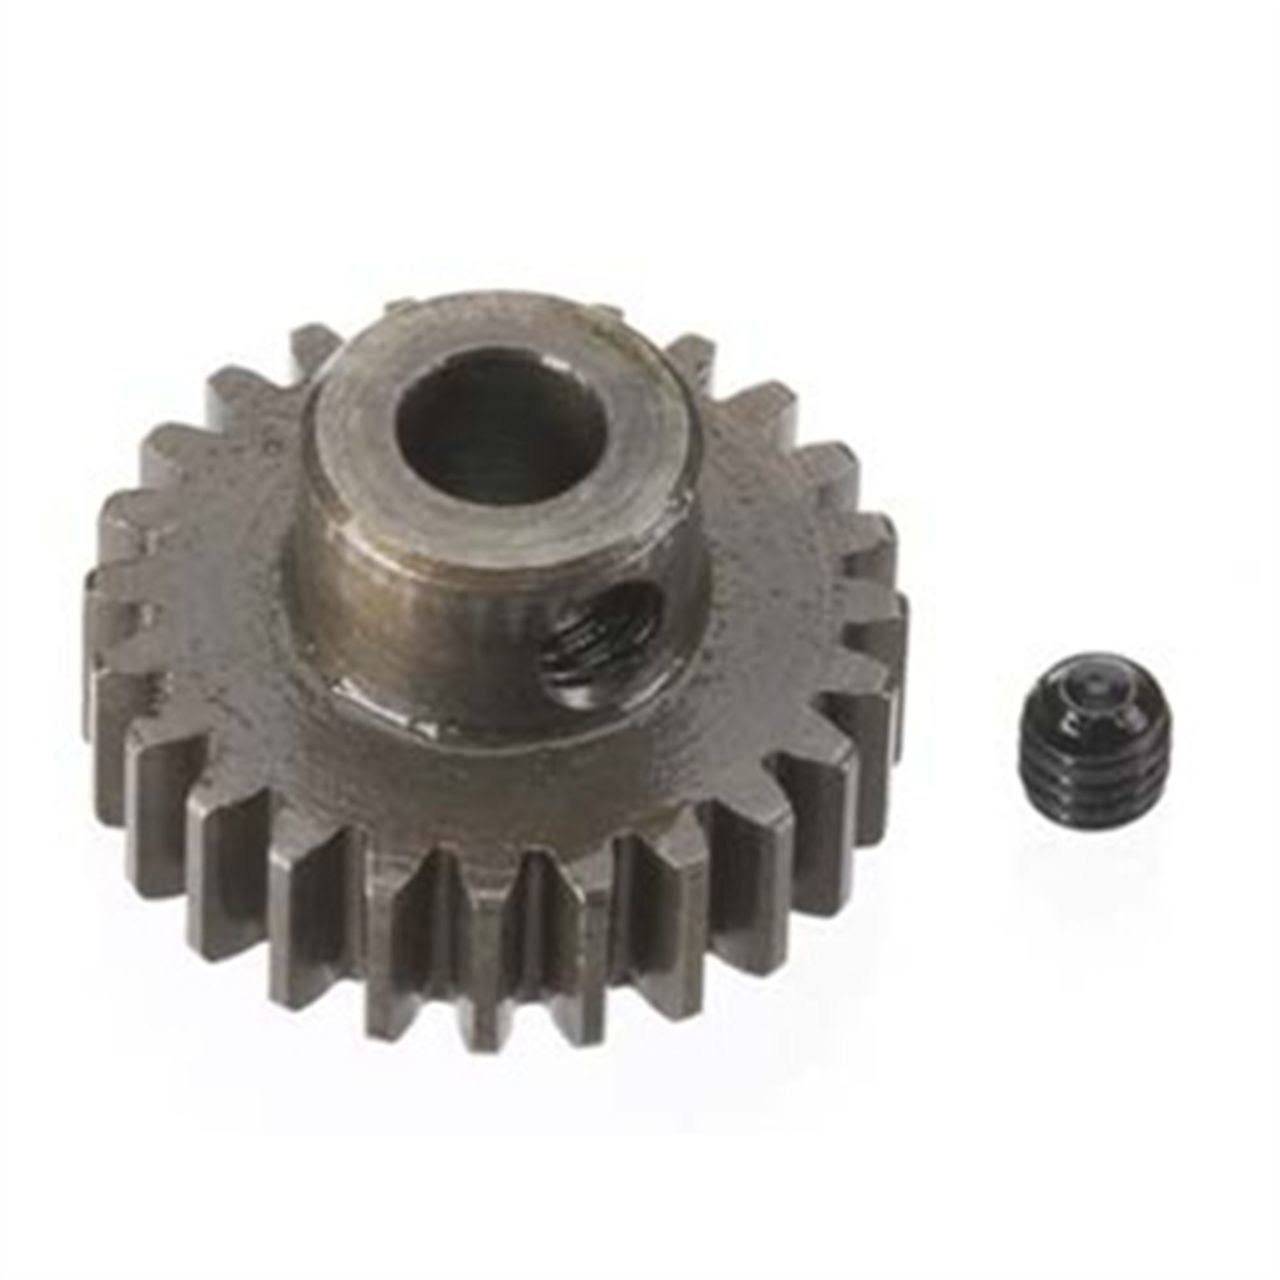 Robinson Racing 8724 Hard Bore 0.8 Module Pinion Gear - 24T, 5mm